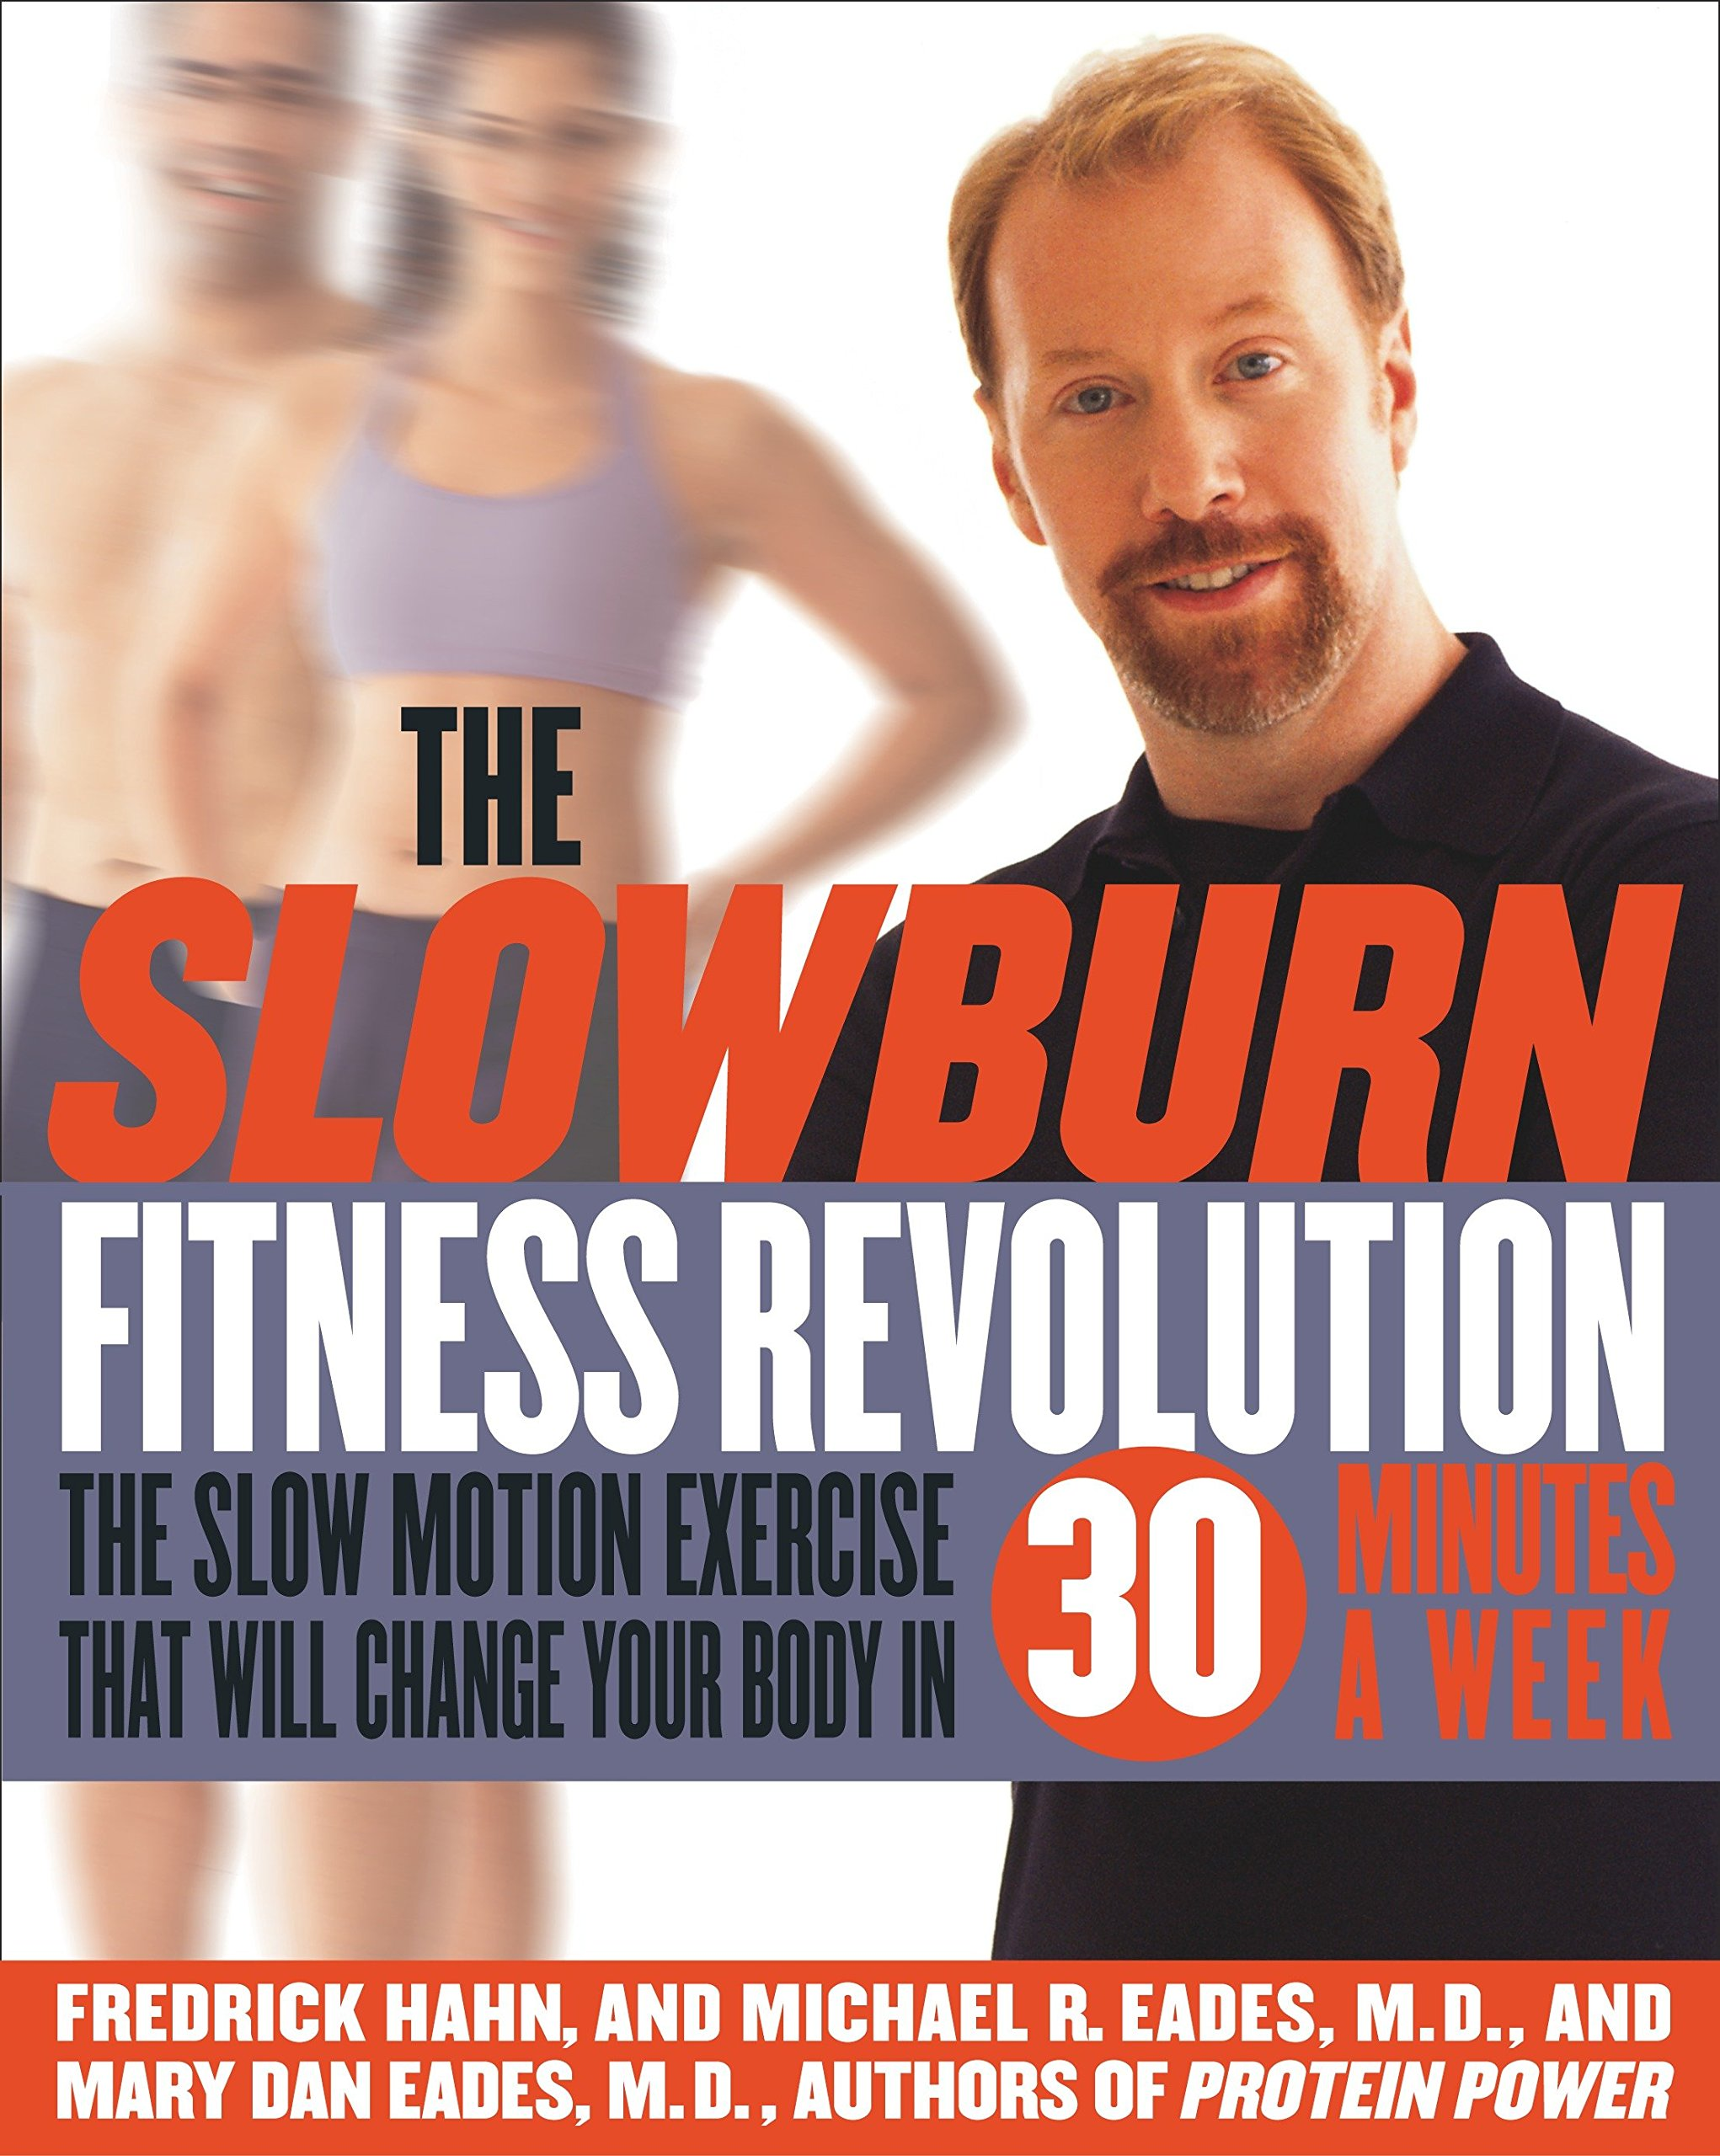 The Slow Burn Fitness Revolution: The Slow Motion Exercise That Will Change Your Body in 30 Minutes a Week PDF